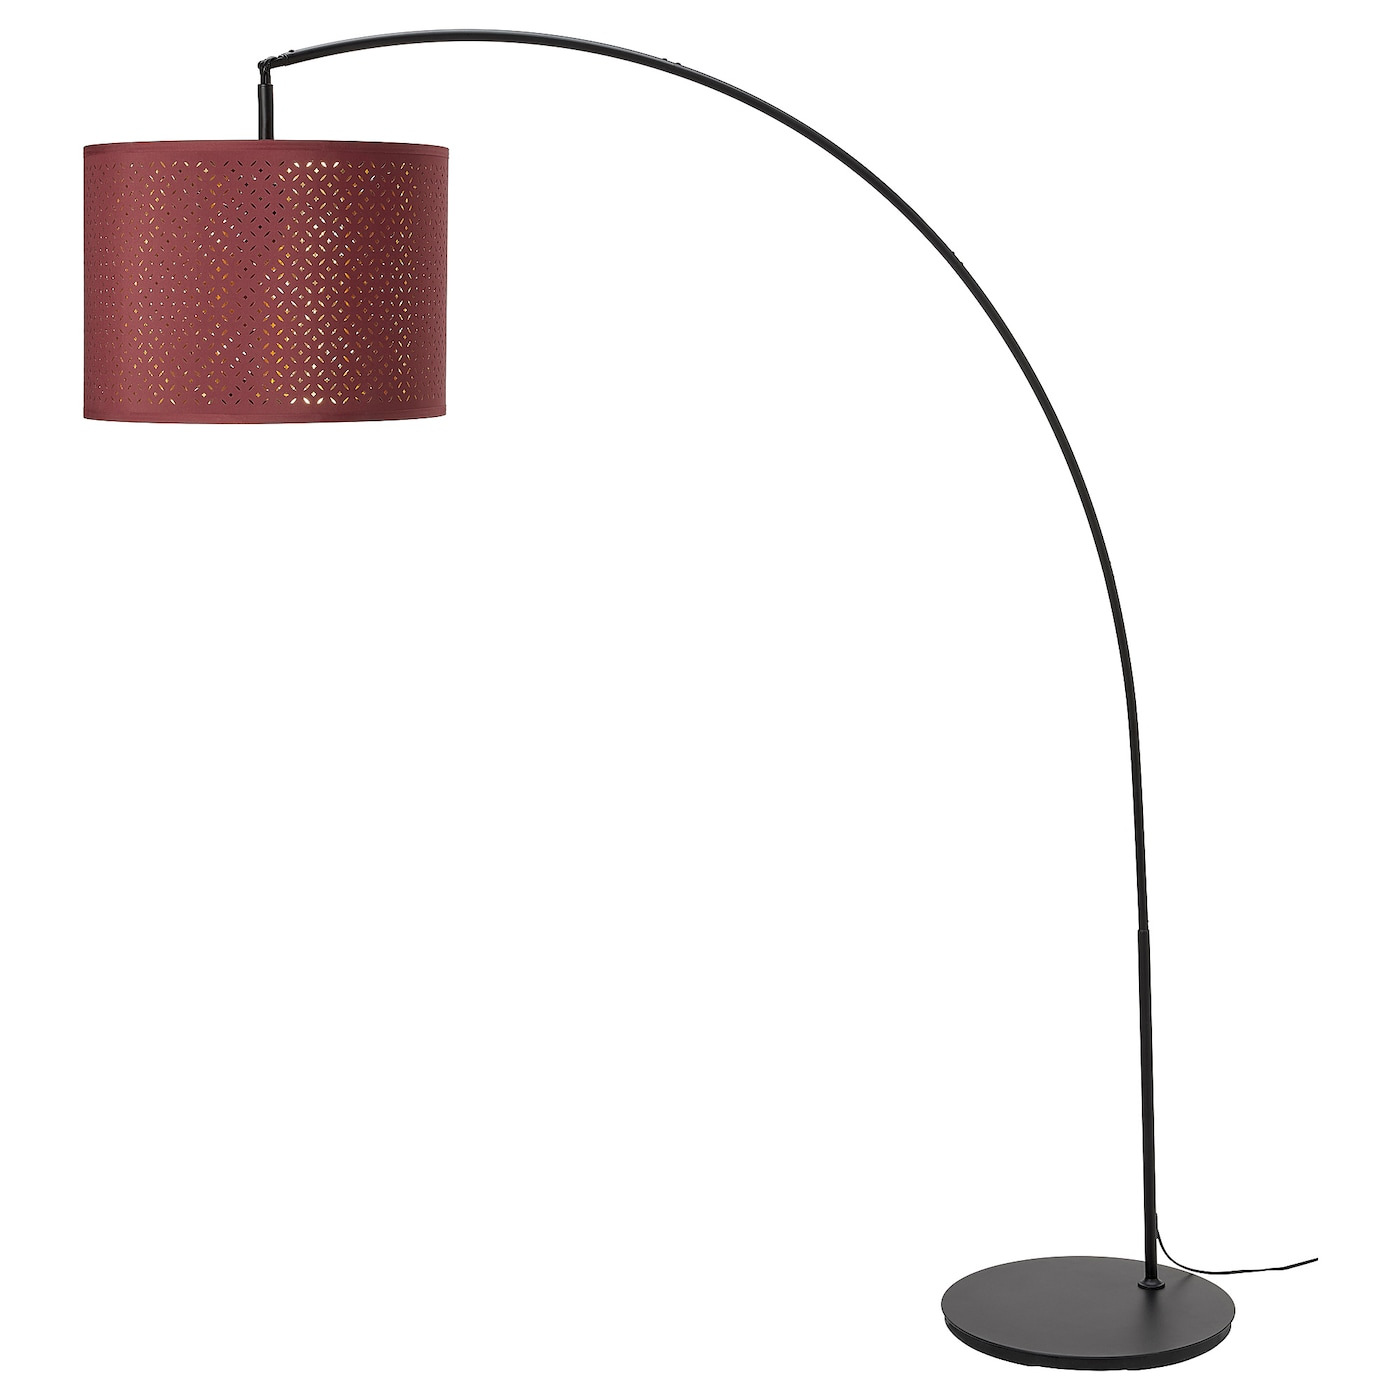 SKAFTET Floor lamp, arched, red, brass